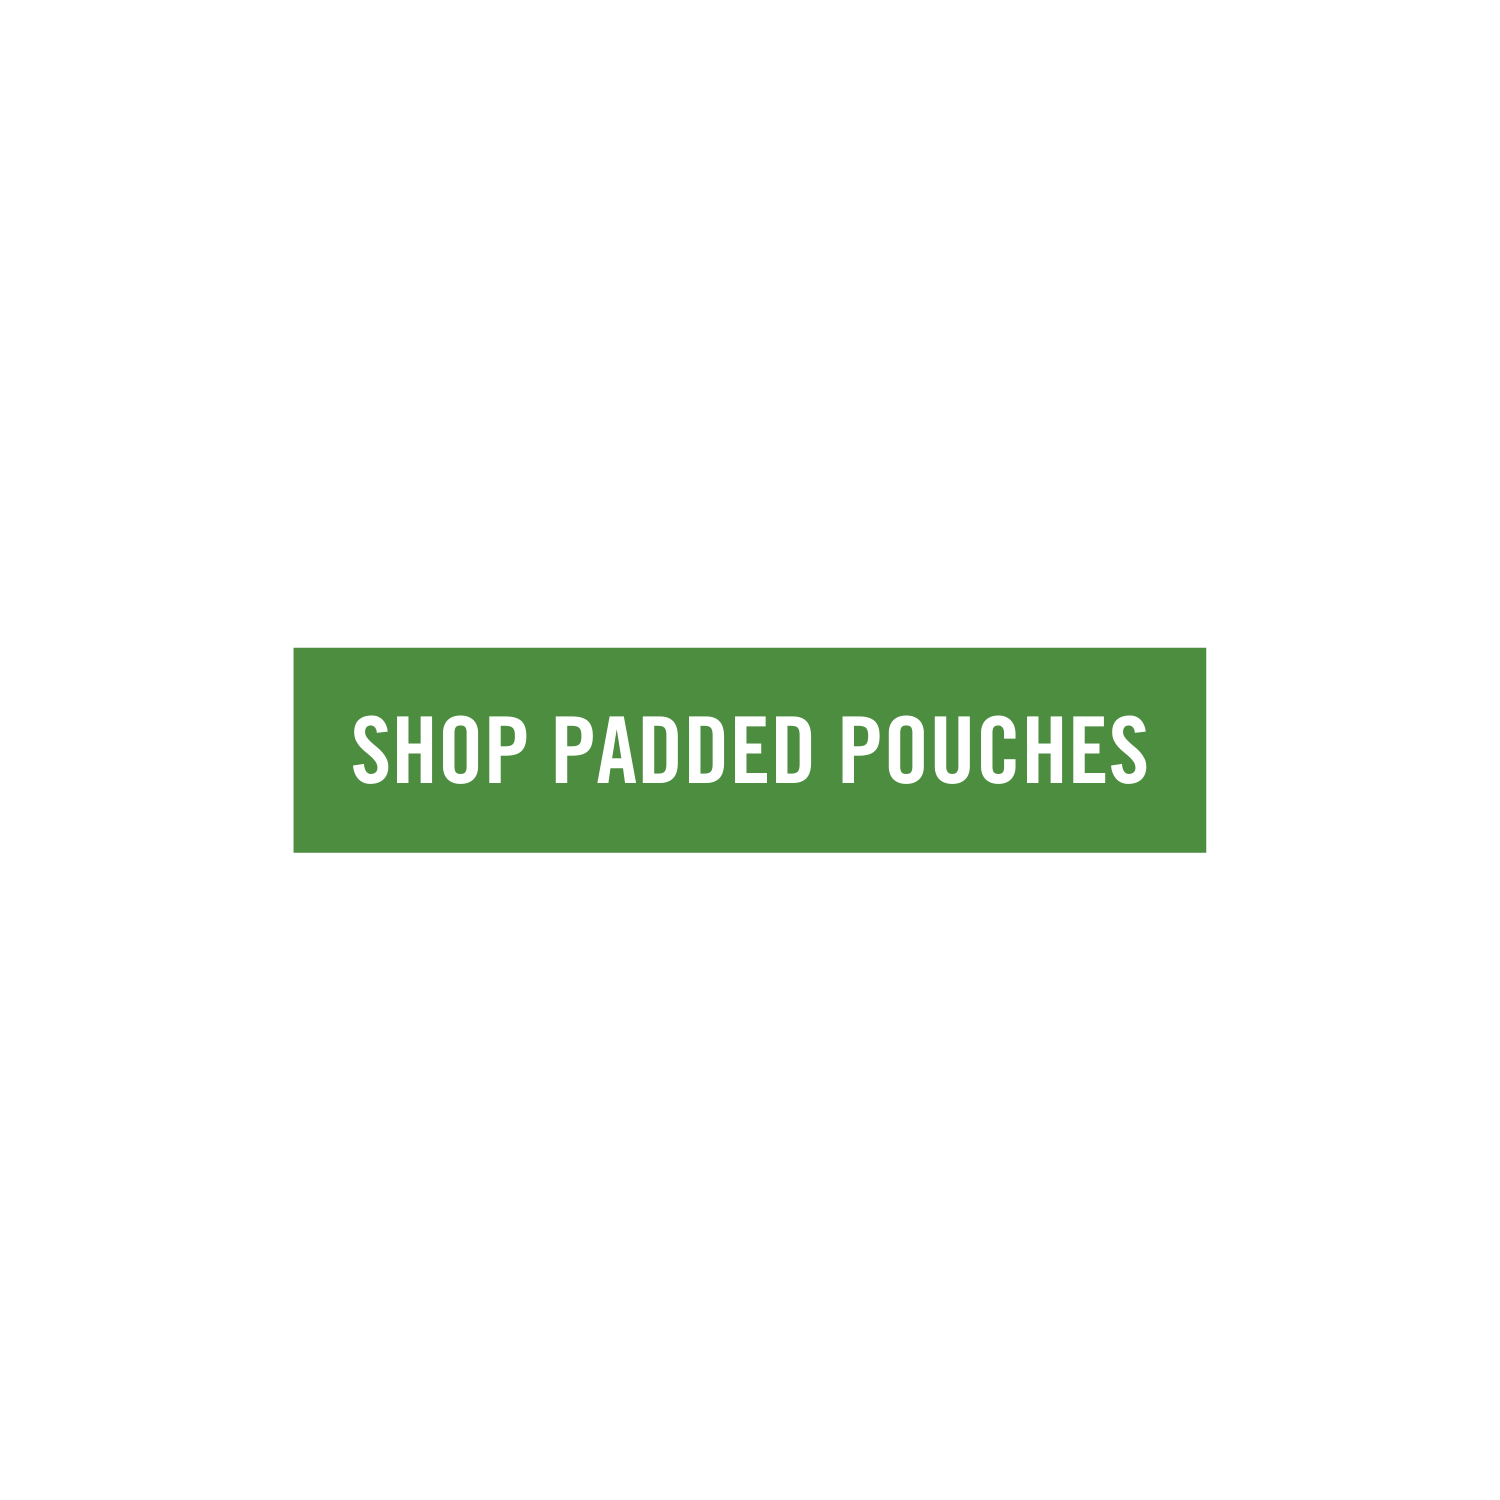 Shop Padded Pouches